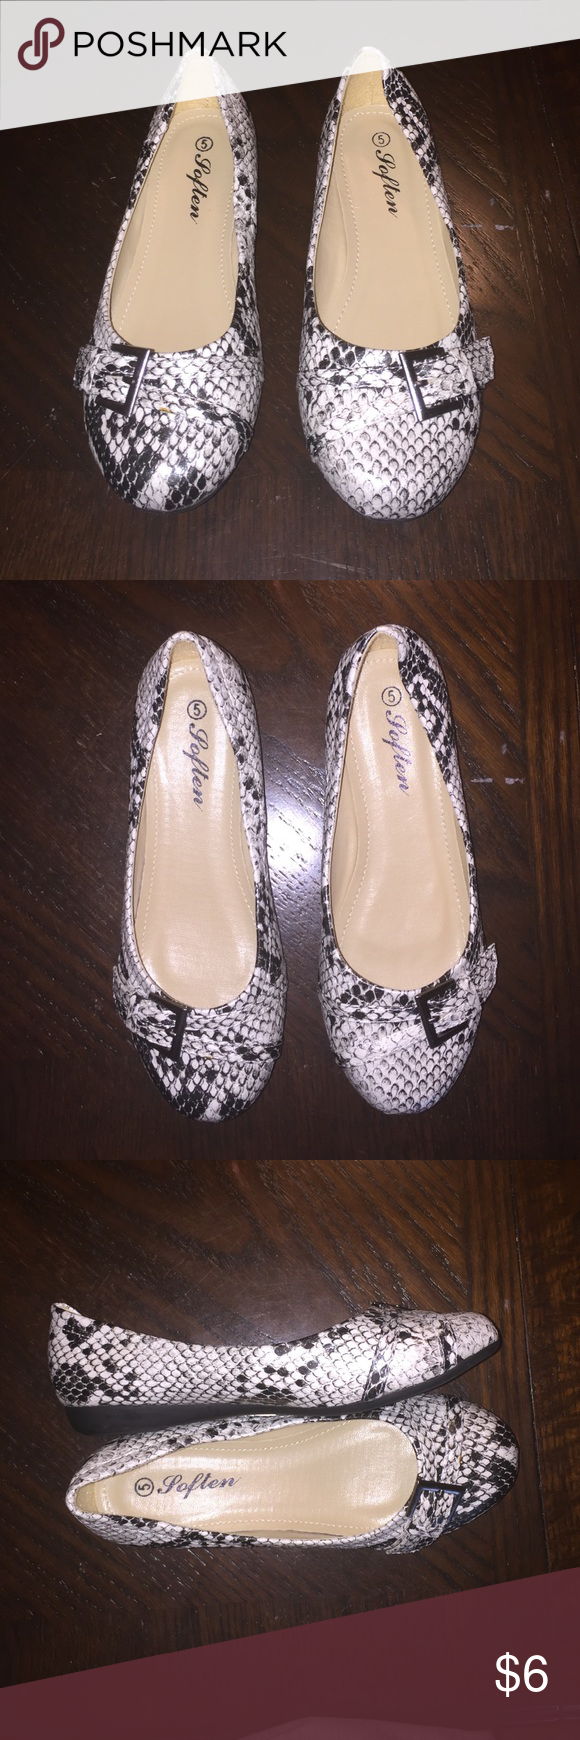 Designer Shoes Brand New in Original Box Soften Shoes Flats & Loafers